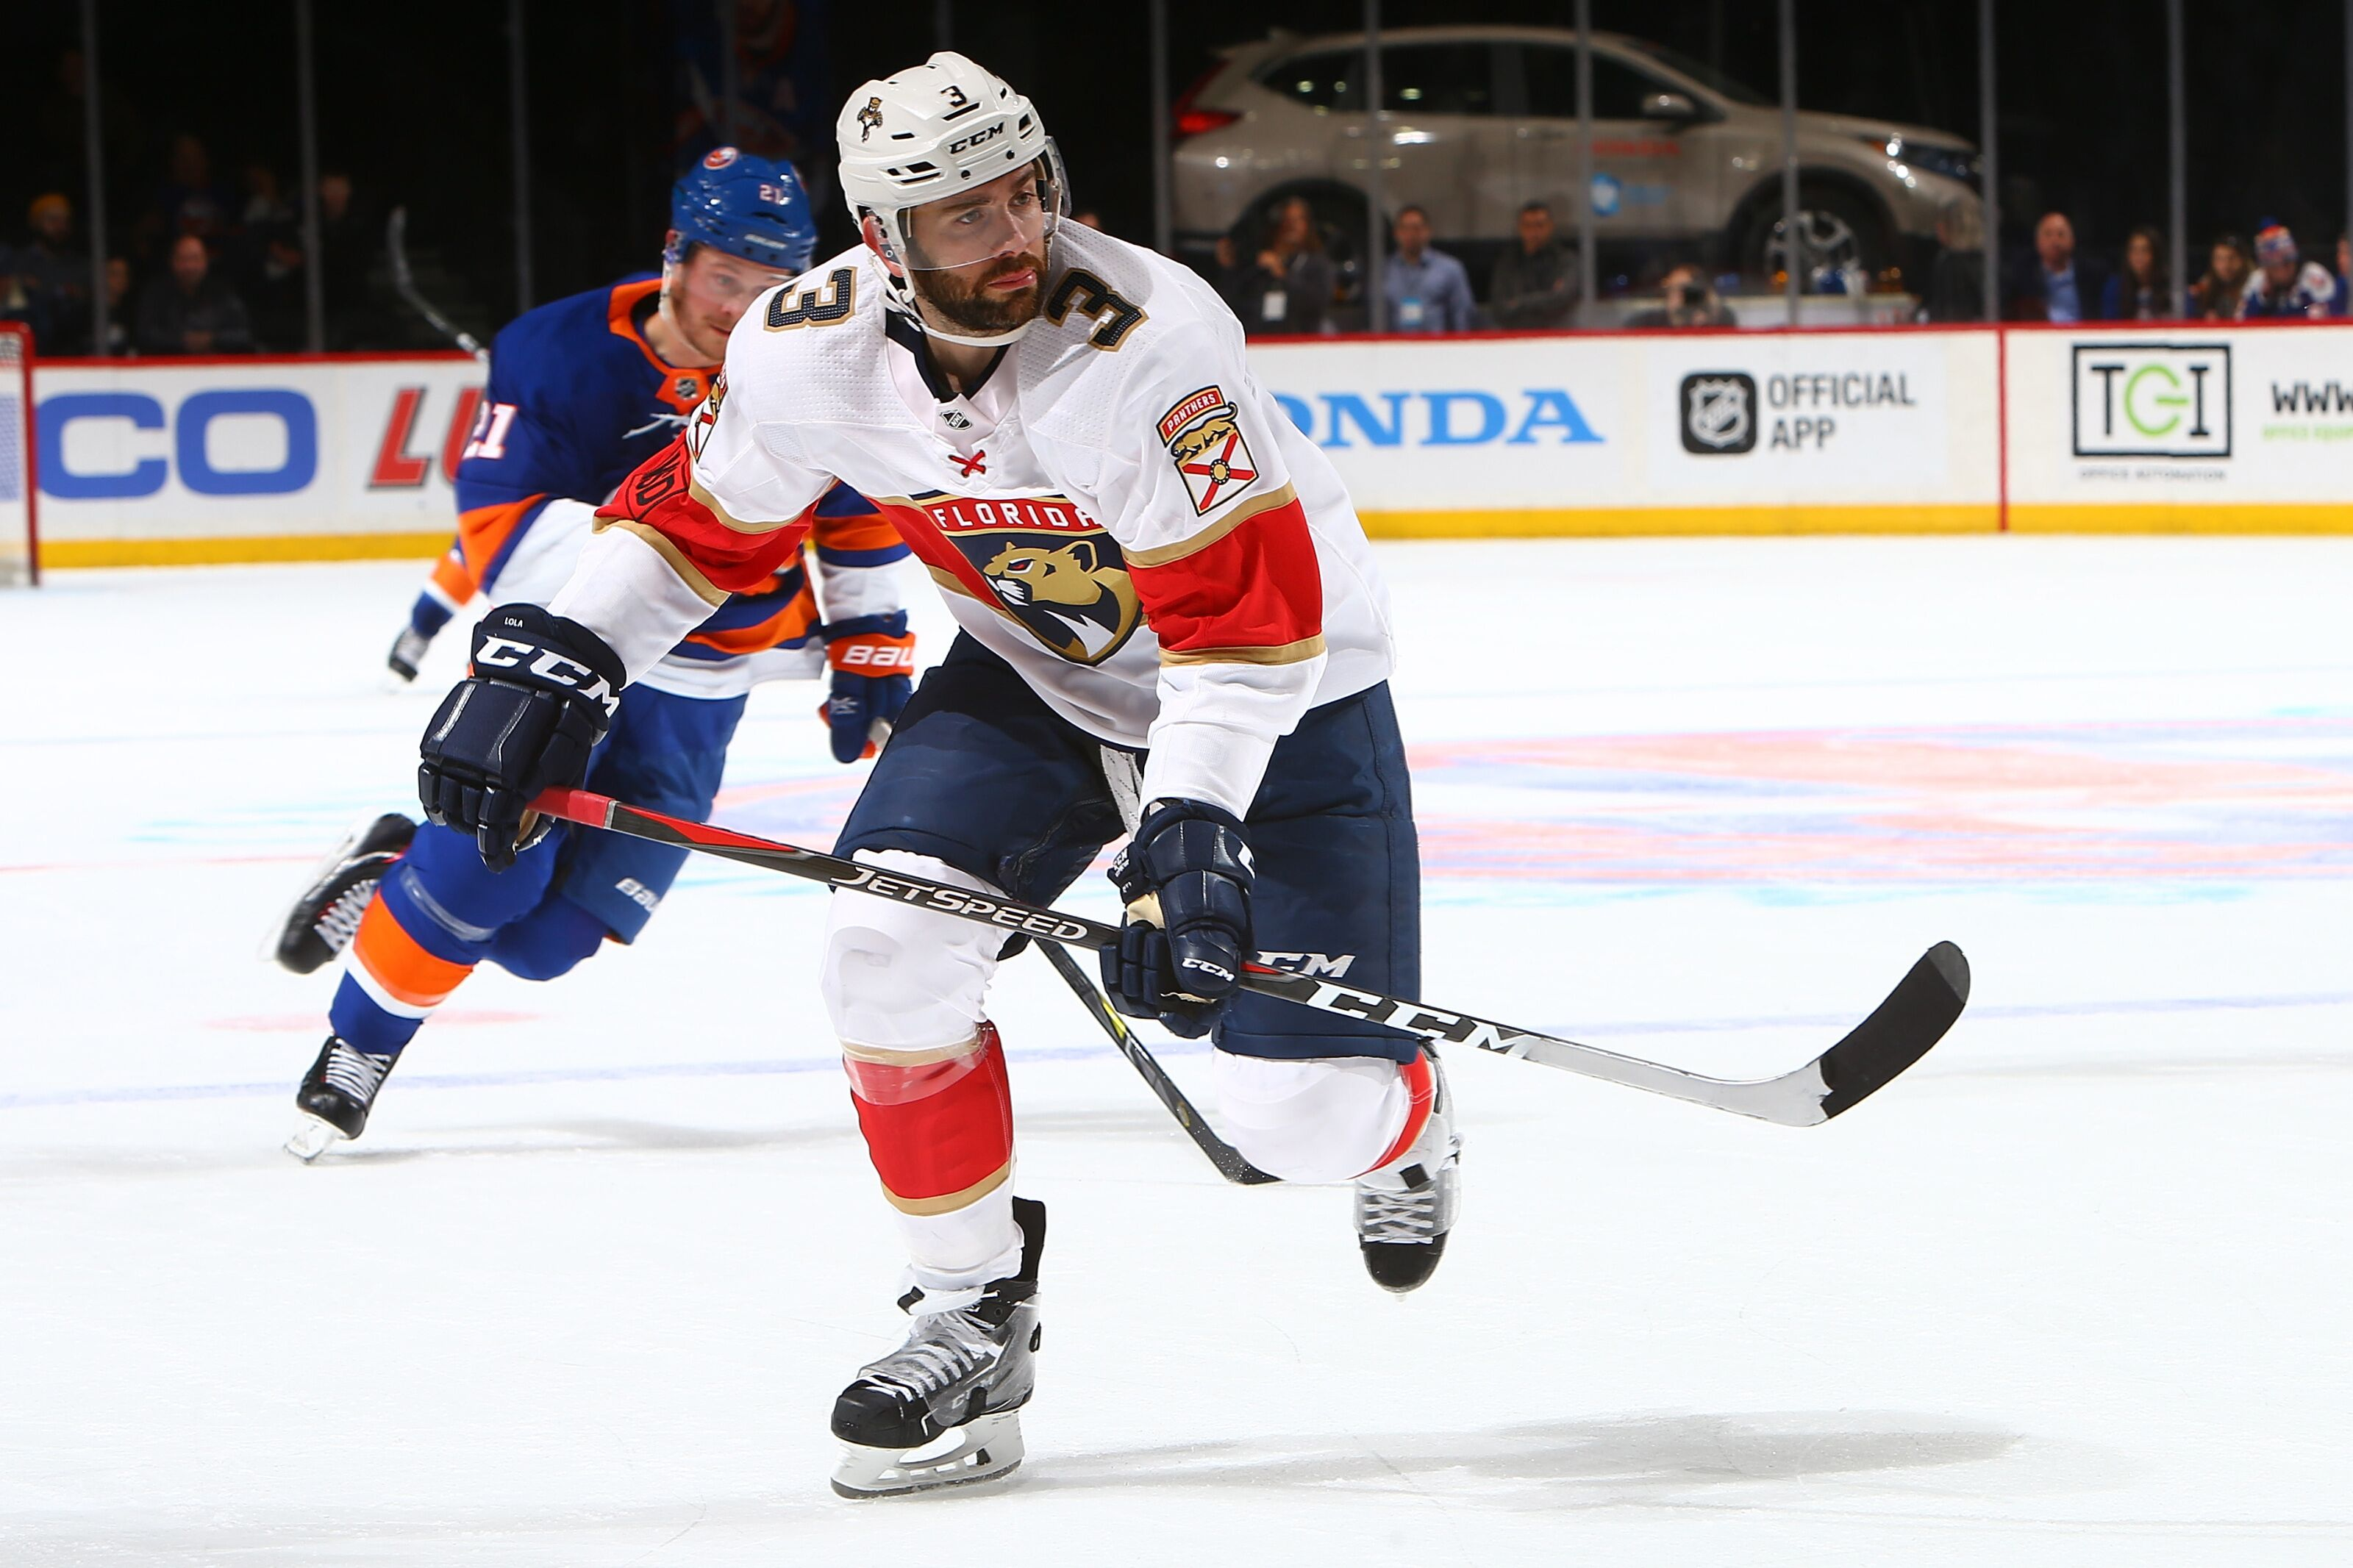 938803012-florida-panthers-v-new-york-islanders.jpg